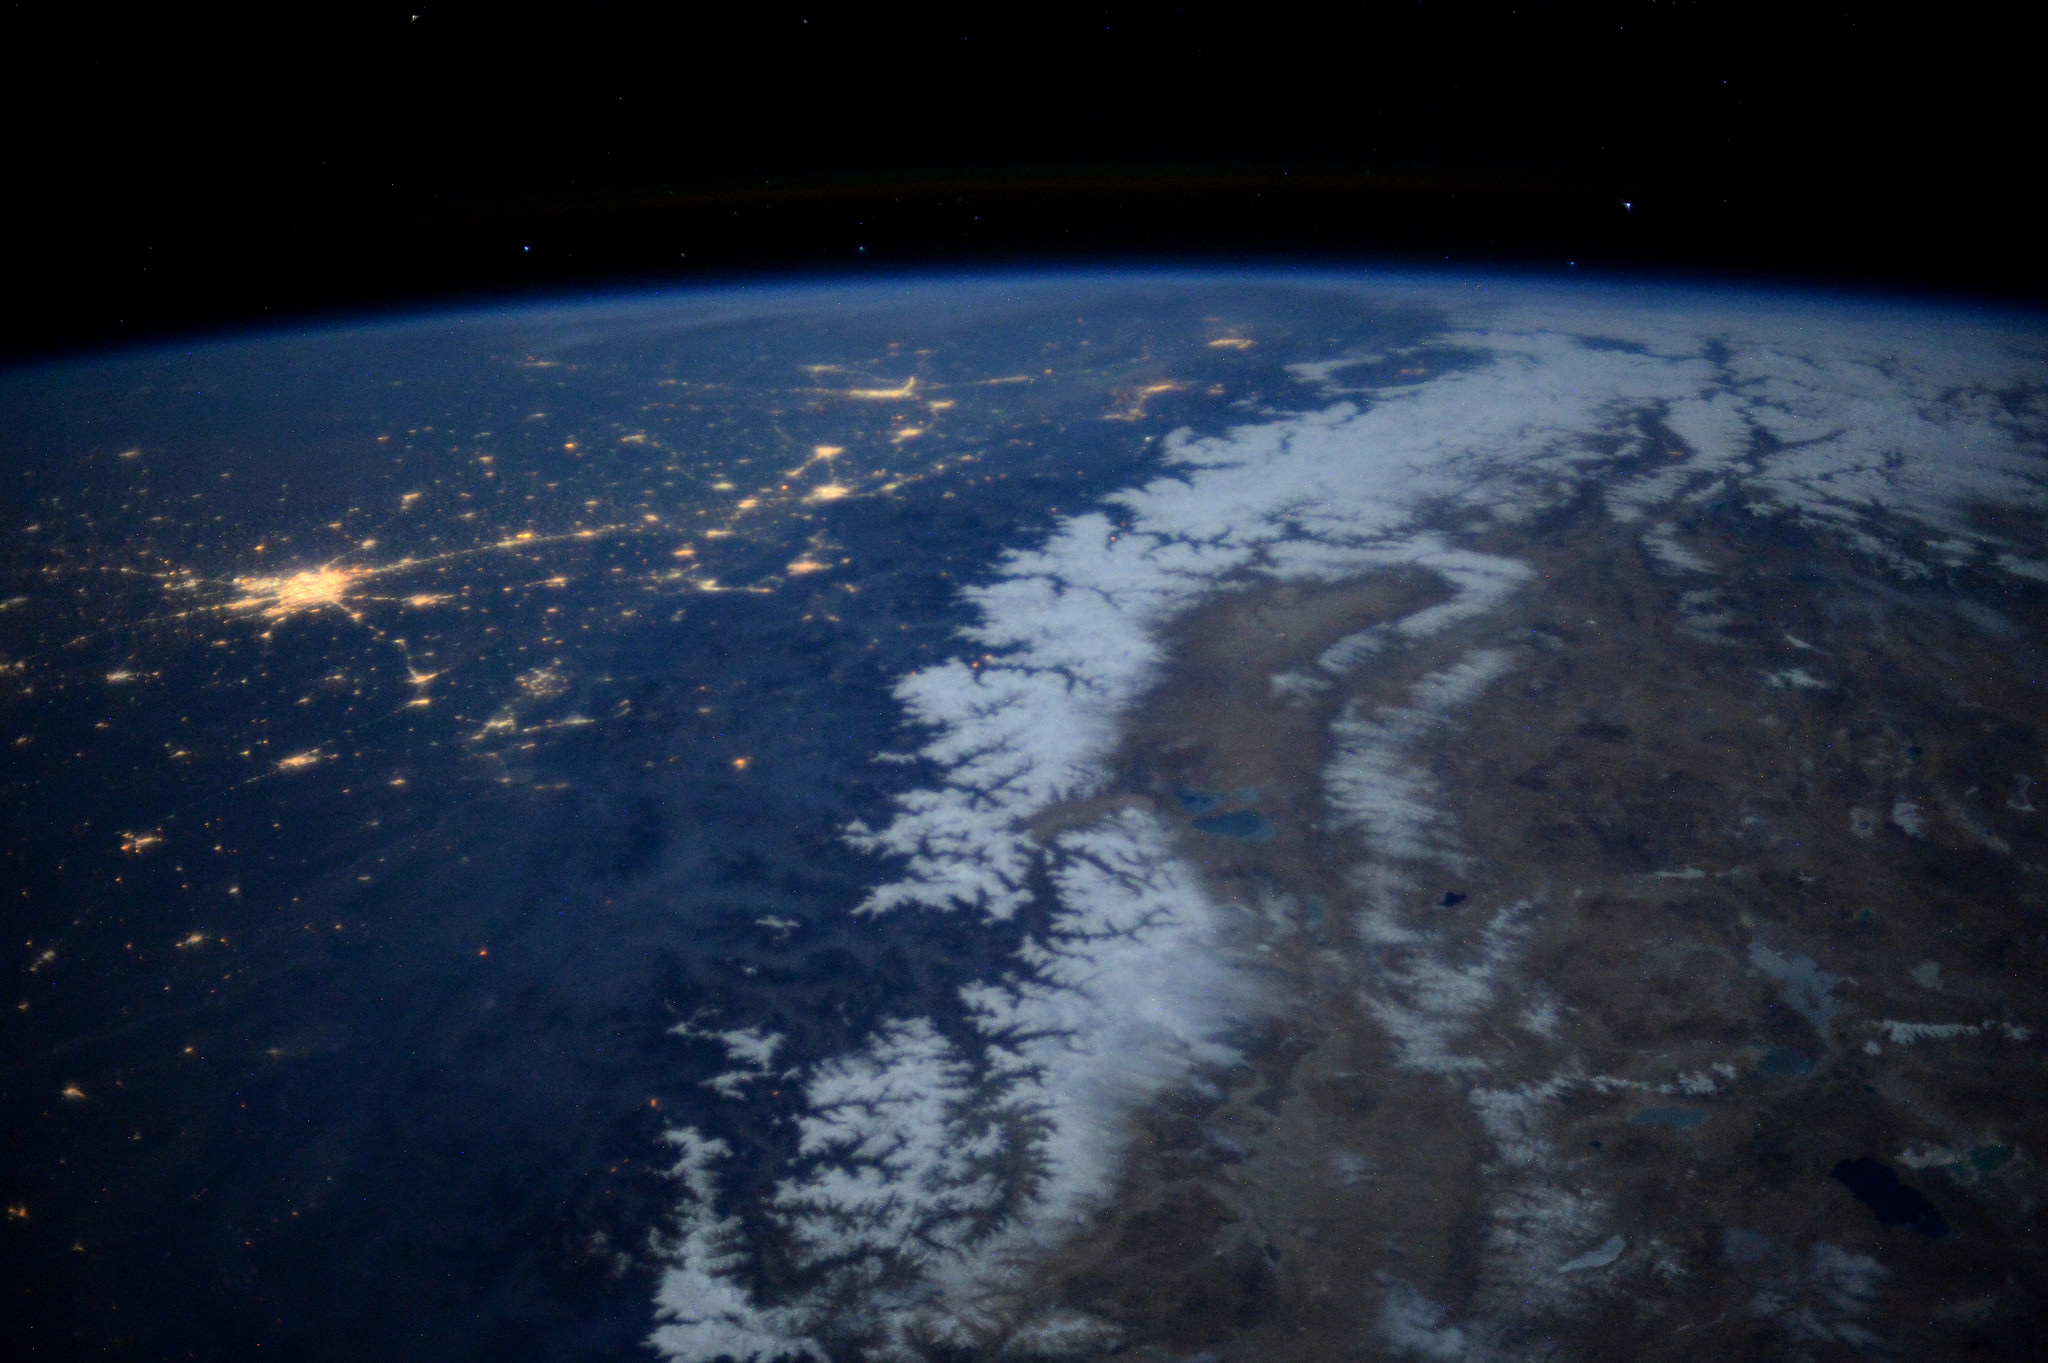 another shot of moonlit Delhi and The Himalayas from Space shared by astronaut Tim peake-India From Space